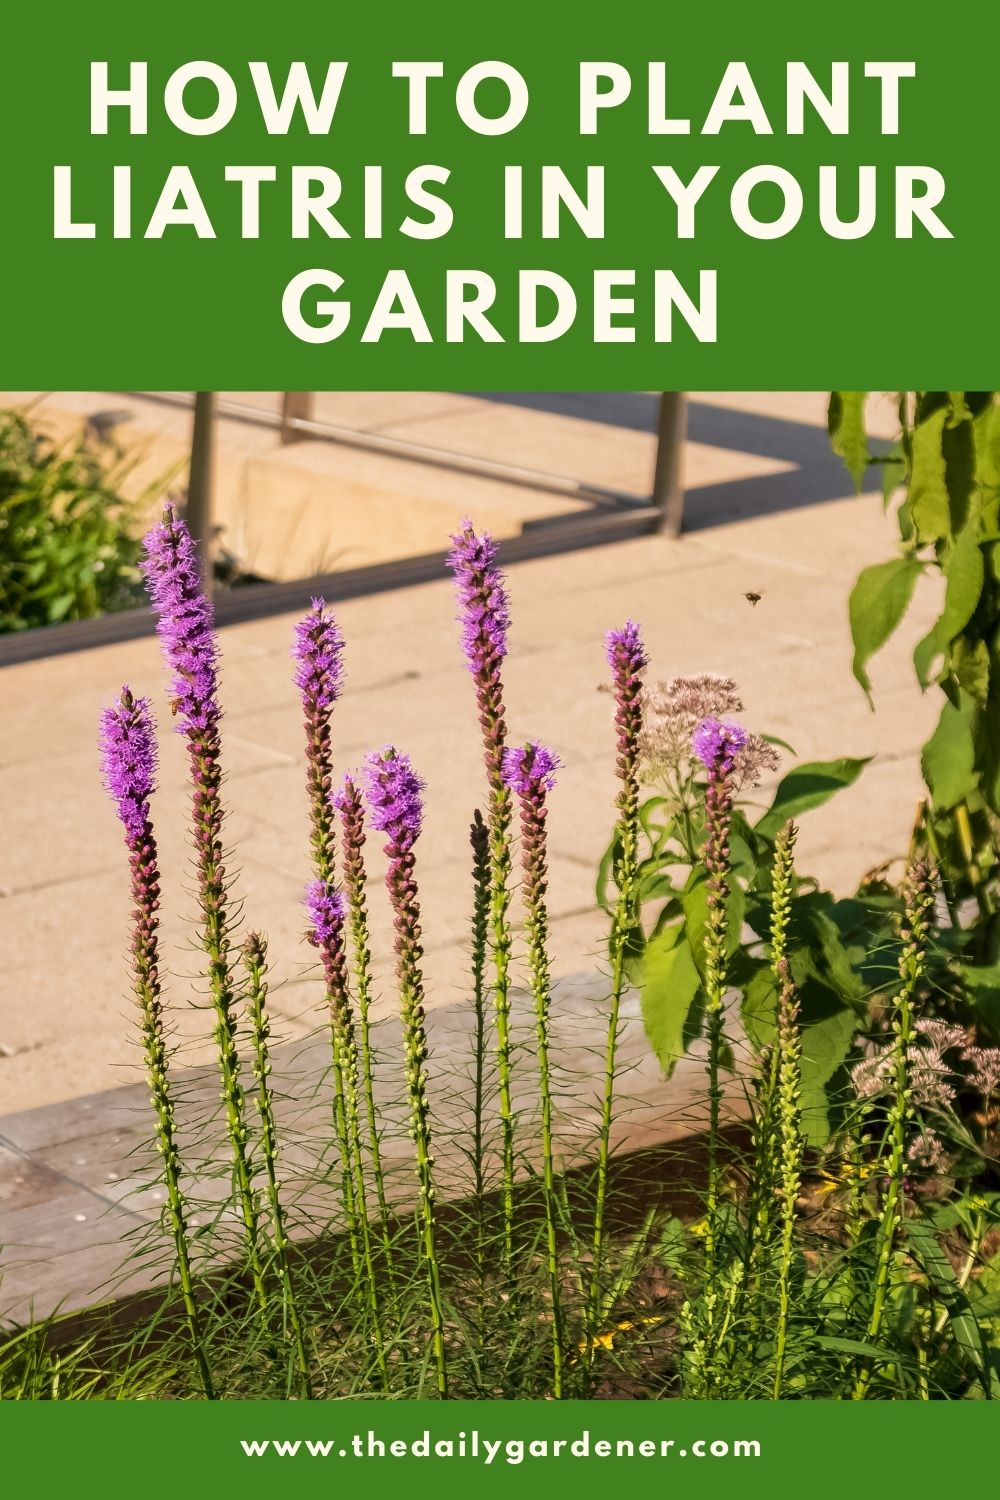 How to Plant Liatris in Your Garden 2